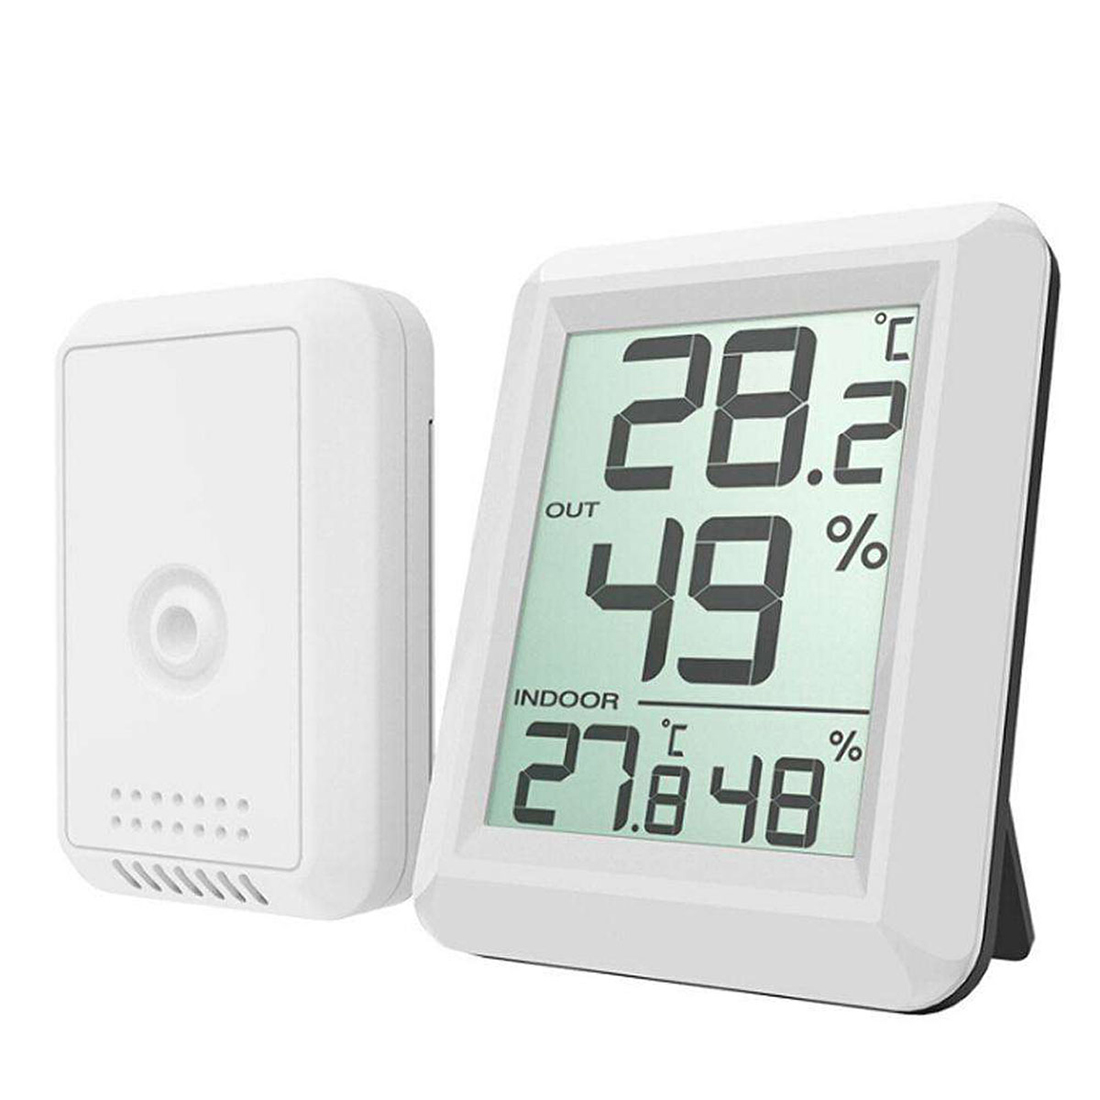 Household thermometer hygrometer Electronic Temperature Humidity Meter Wireless Thermometer Hygrometer Weather Station